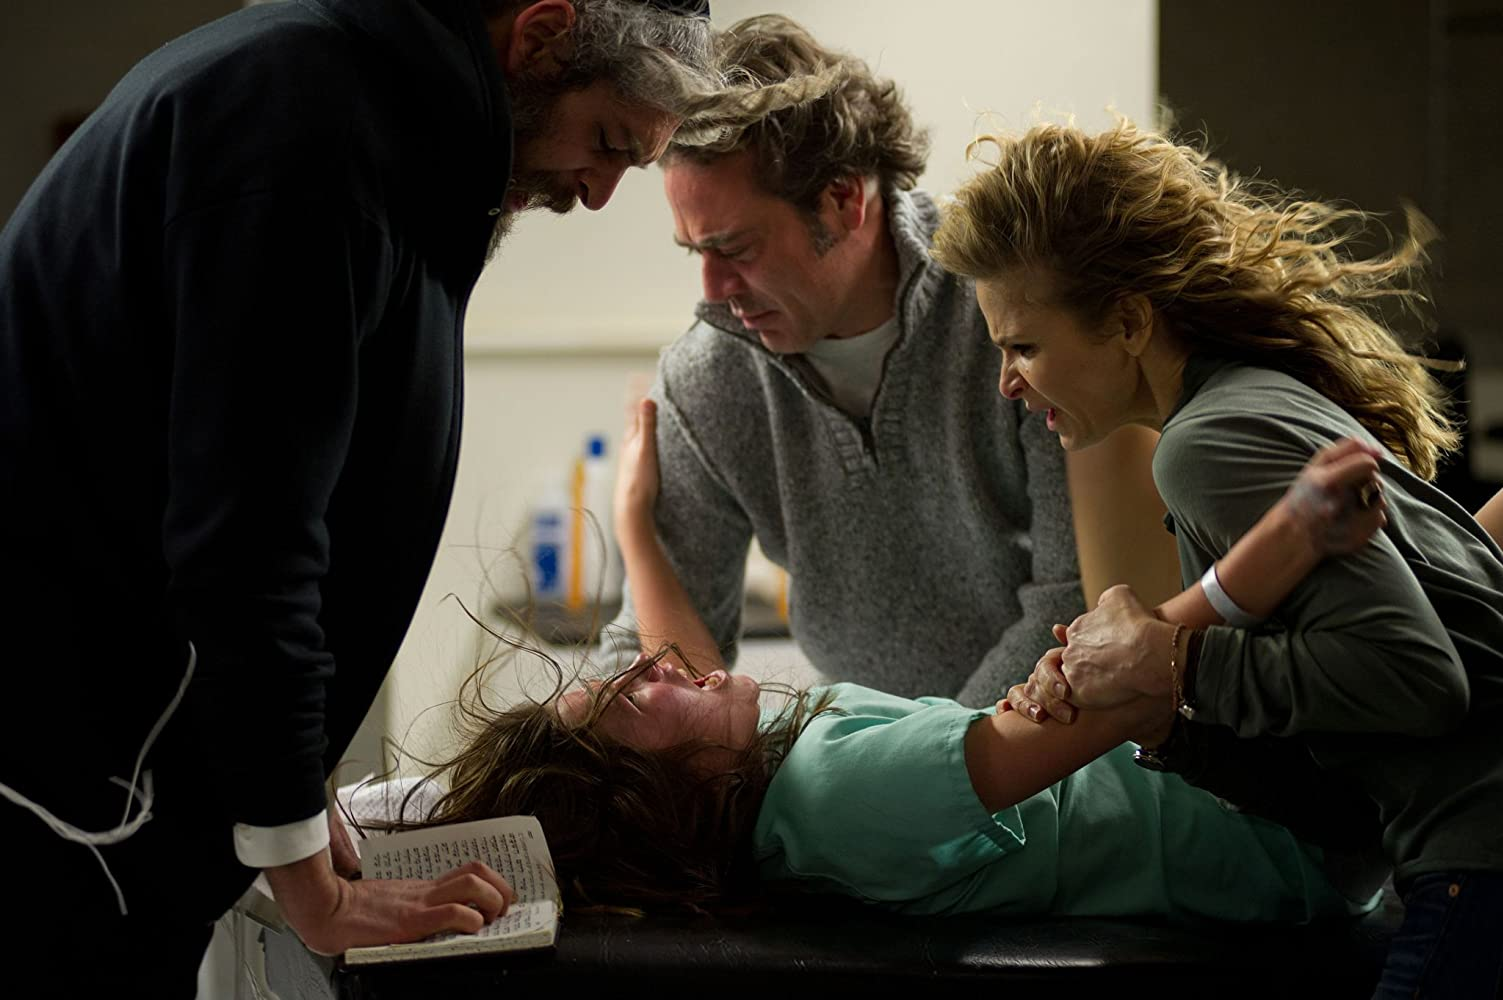 Kyra Sedgwick, Jeffrey Dean Morgan, Matisyahu, and Natasha Calis in The Possession (2012)